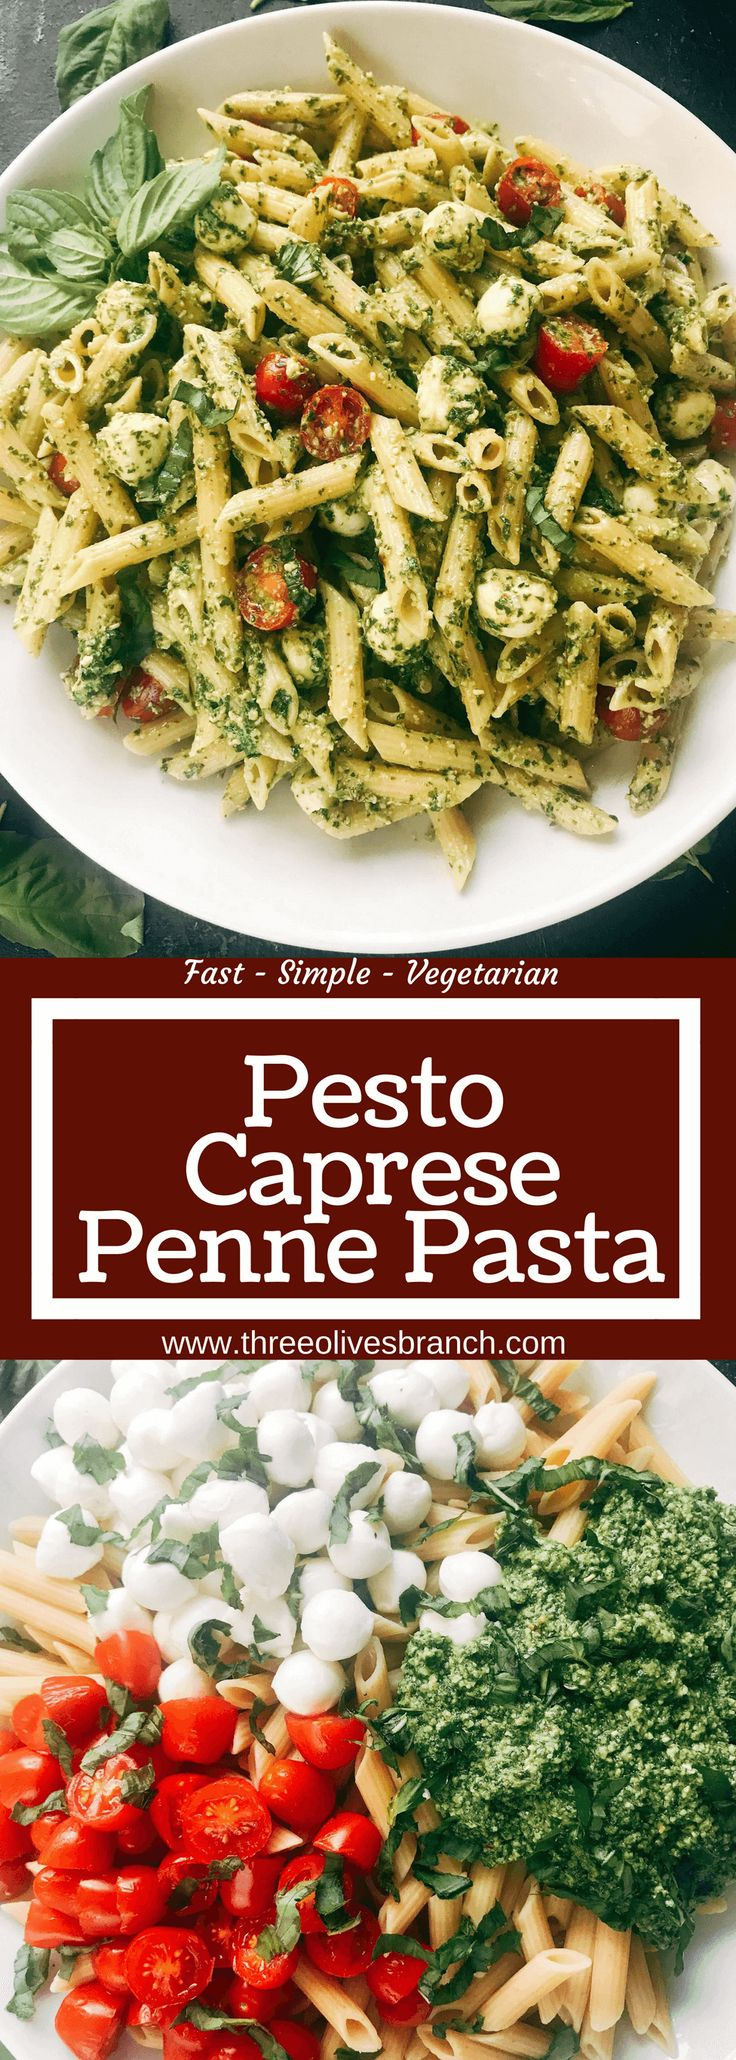 Less than 25 minutes to make this fresh basil pesto pasta with cherry tomatoes and fresh mozzarella cheese. A quick and simple Italian pasta recipe highlighting fresh caprese flavors. Vegetarian recipe but add chicken or sausage for meat lovers. Featuring Barilla ProteinPLUS pasta, this dinner recipe is nutritious and hearty, packed with protein, fiber, and Omega-3. Pesto Caprese Penne Pasta | Three Olives Branch | www.threeolivesbranch.com #BarillaProteinPLUS #wonderfulyourway #pasta #pesto…